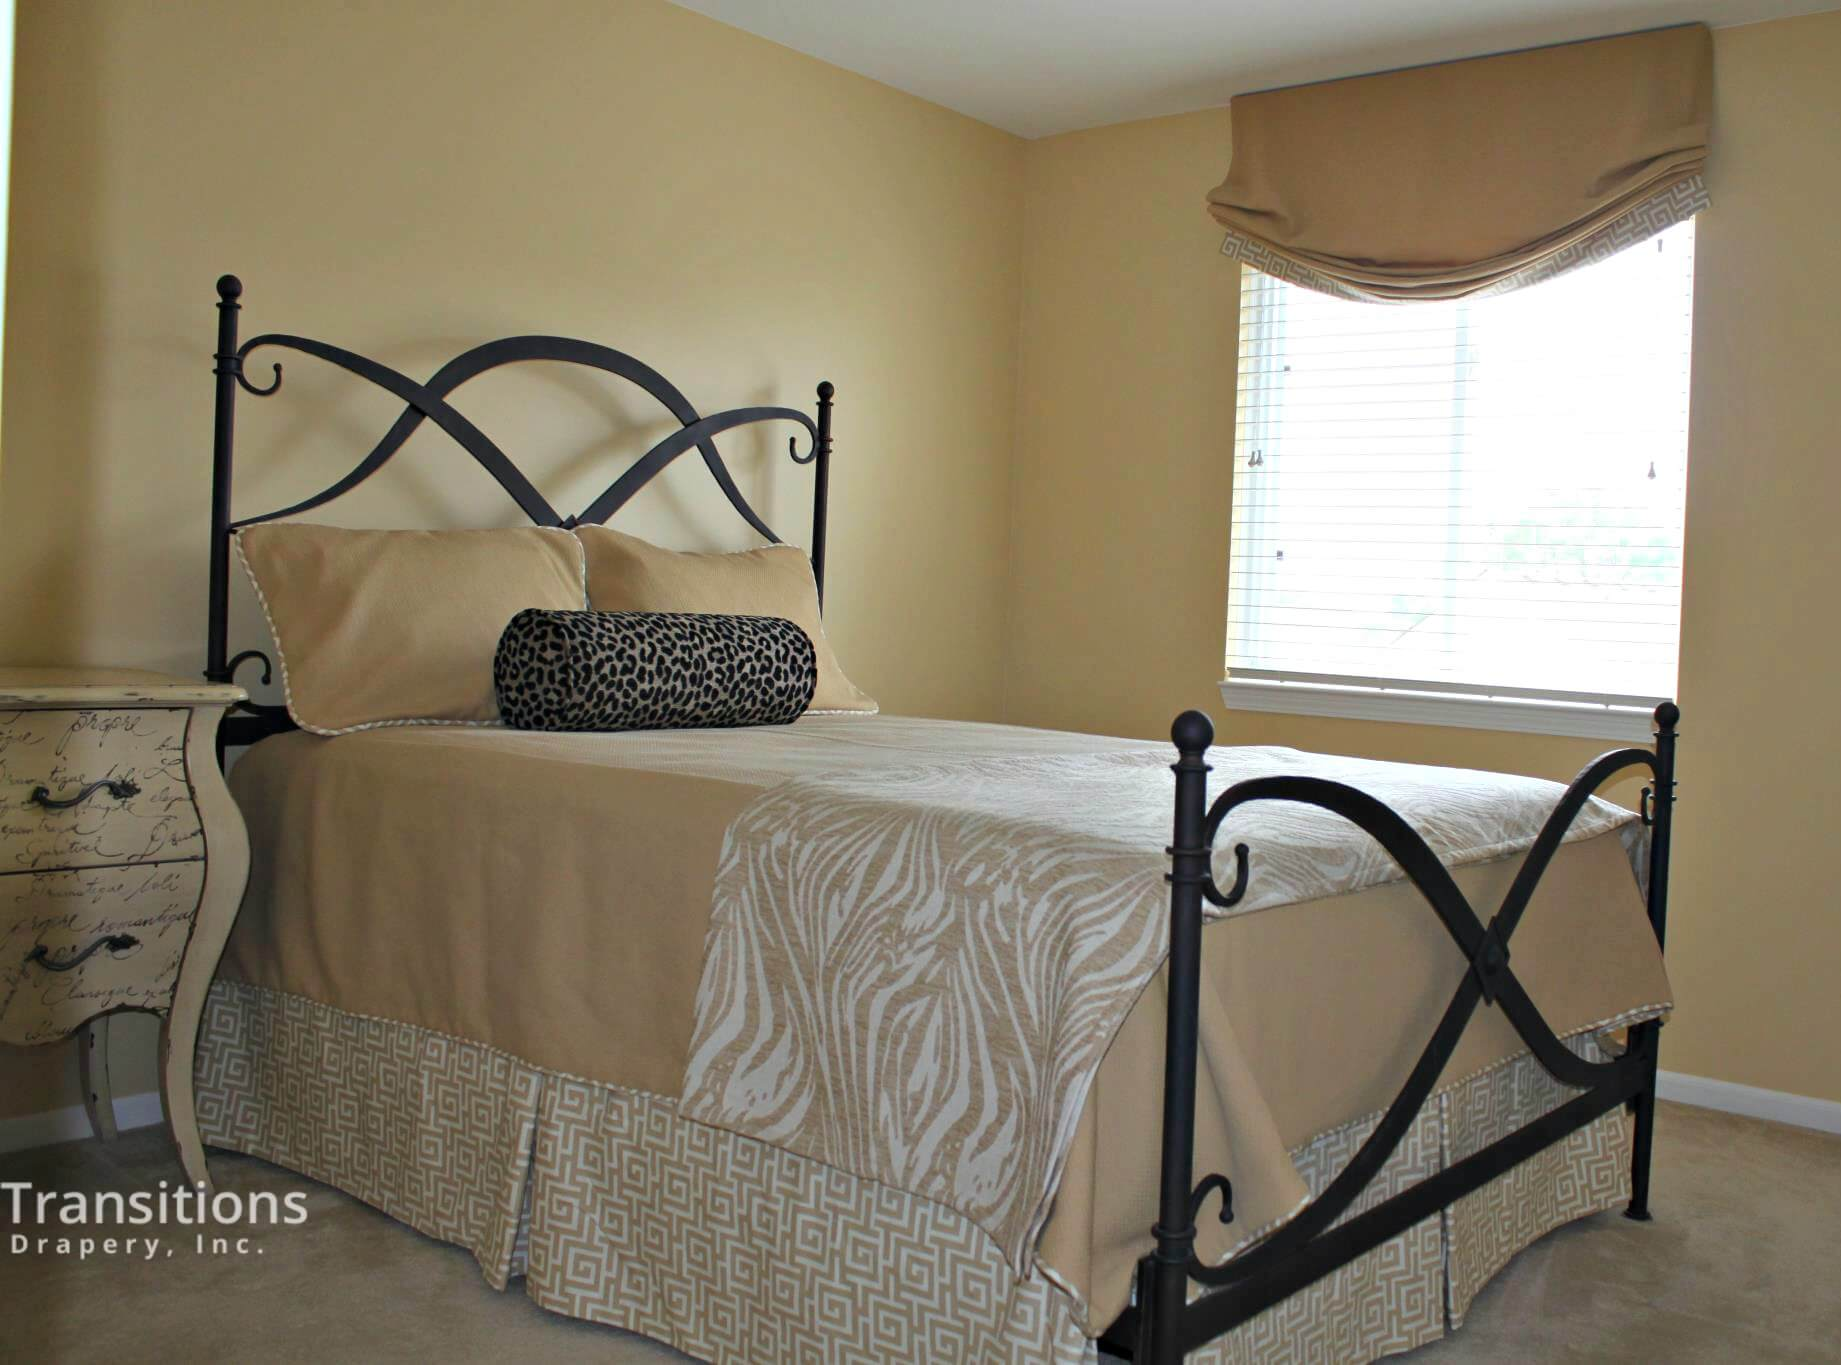 Bedding with skirt, pillows and valance